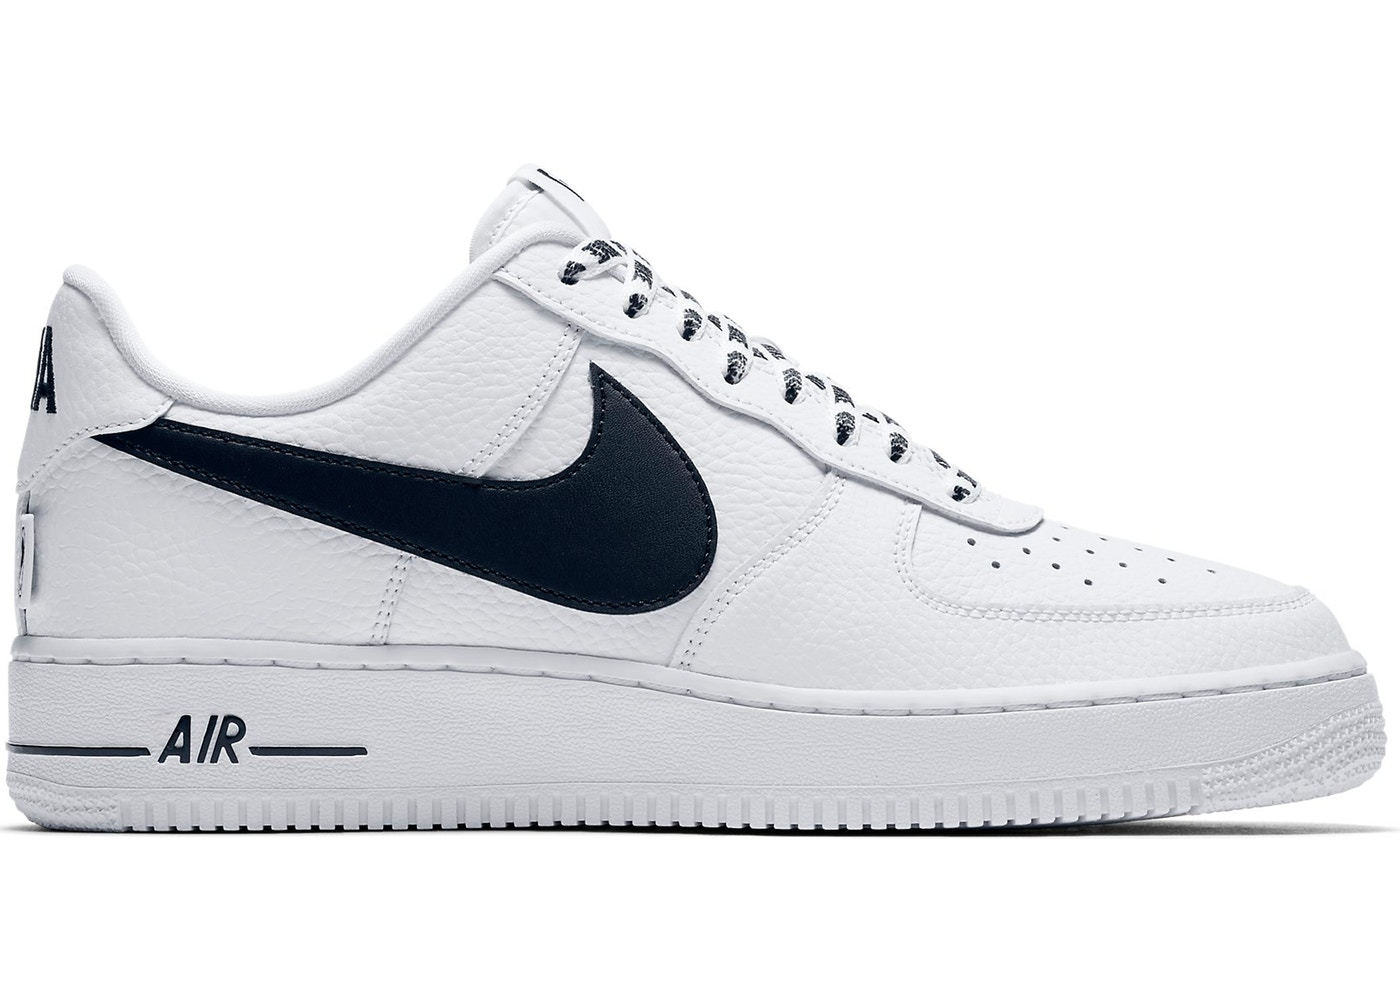 f41b407455e0c Air Force 1 Low NBA White Black - 823511-103